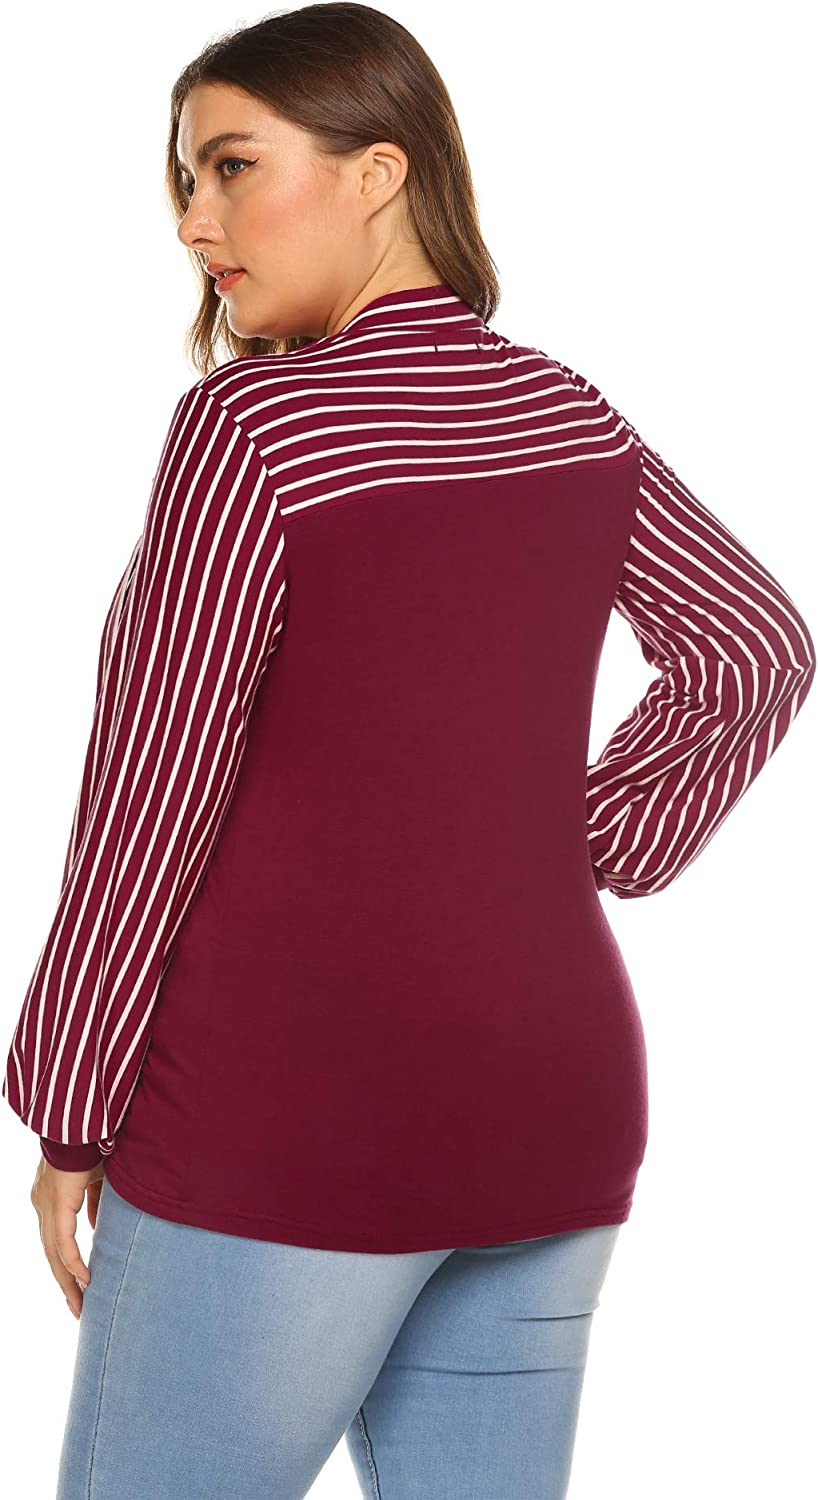 IN'VOLAND Women's Plus Size Tie-Bow Neck Striped Blouse Long Sleeve Shirt Casual Office Work Splicing Blouse Shirts Tops Wine Red pxCMt